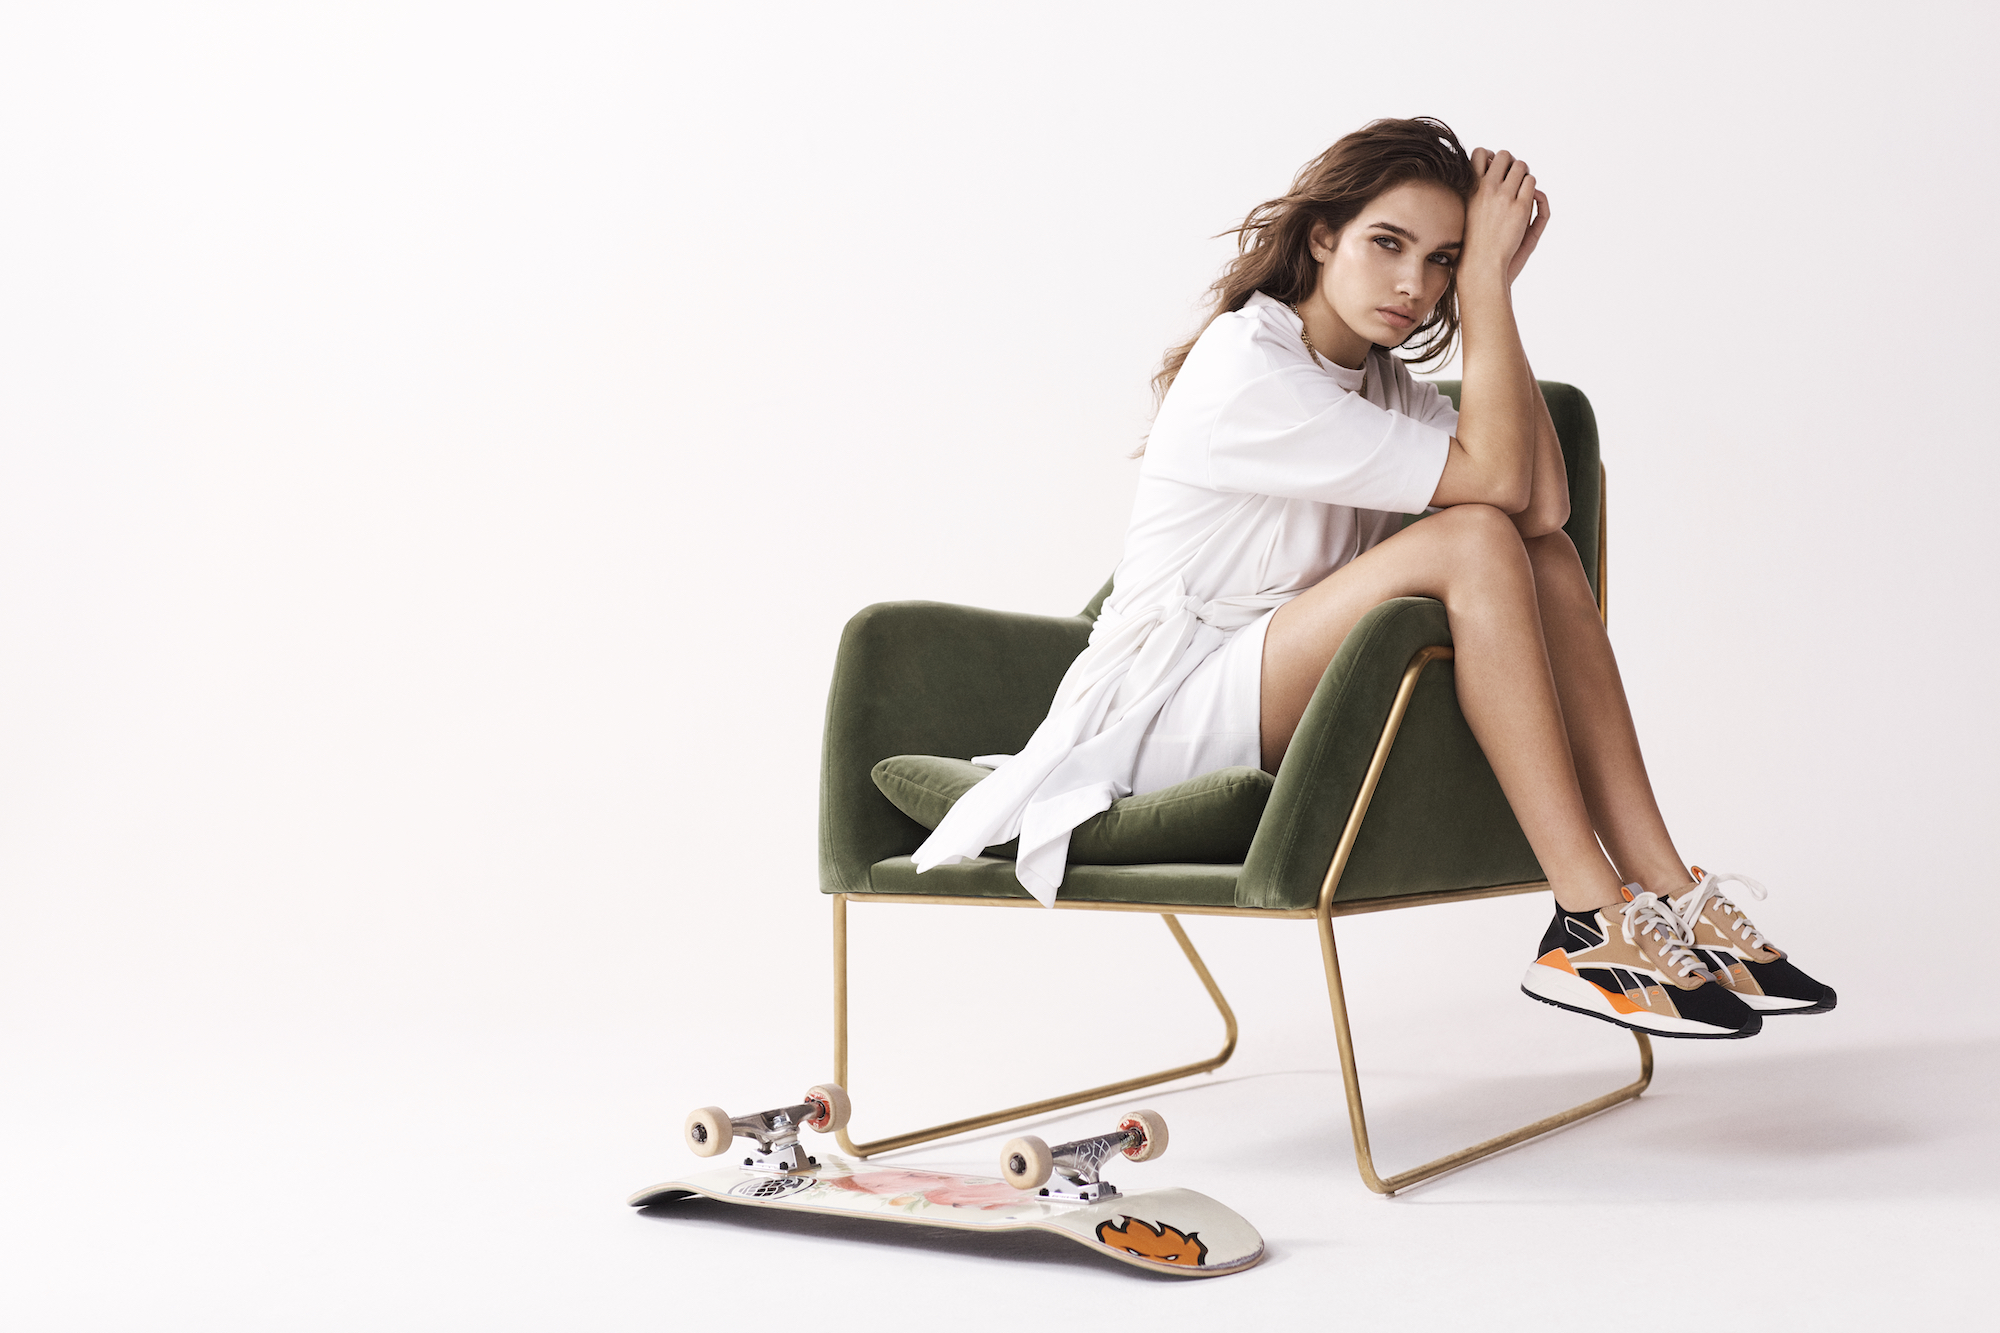 Wonderland editorial cover Hana Cross Victoria Beckham skateboard